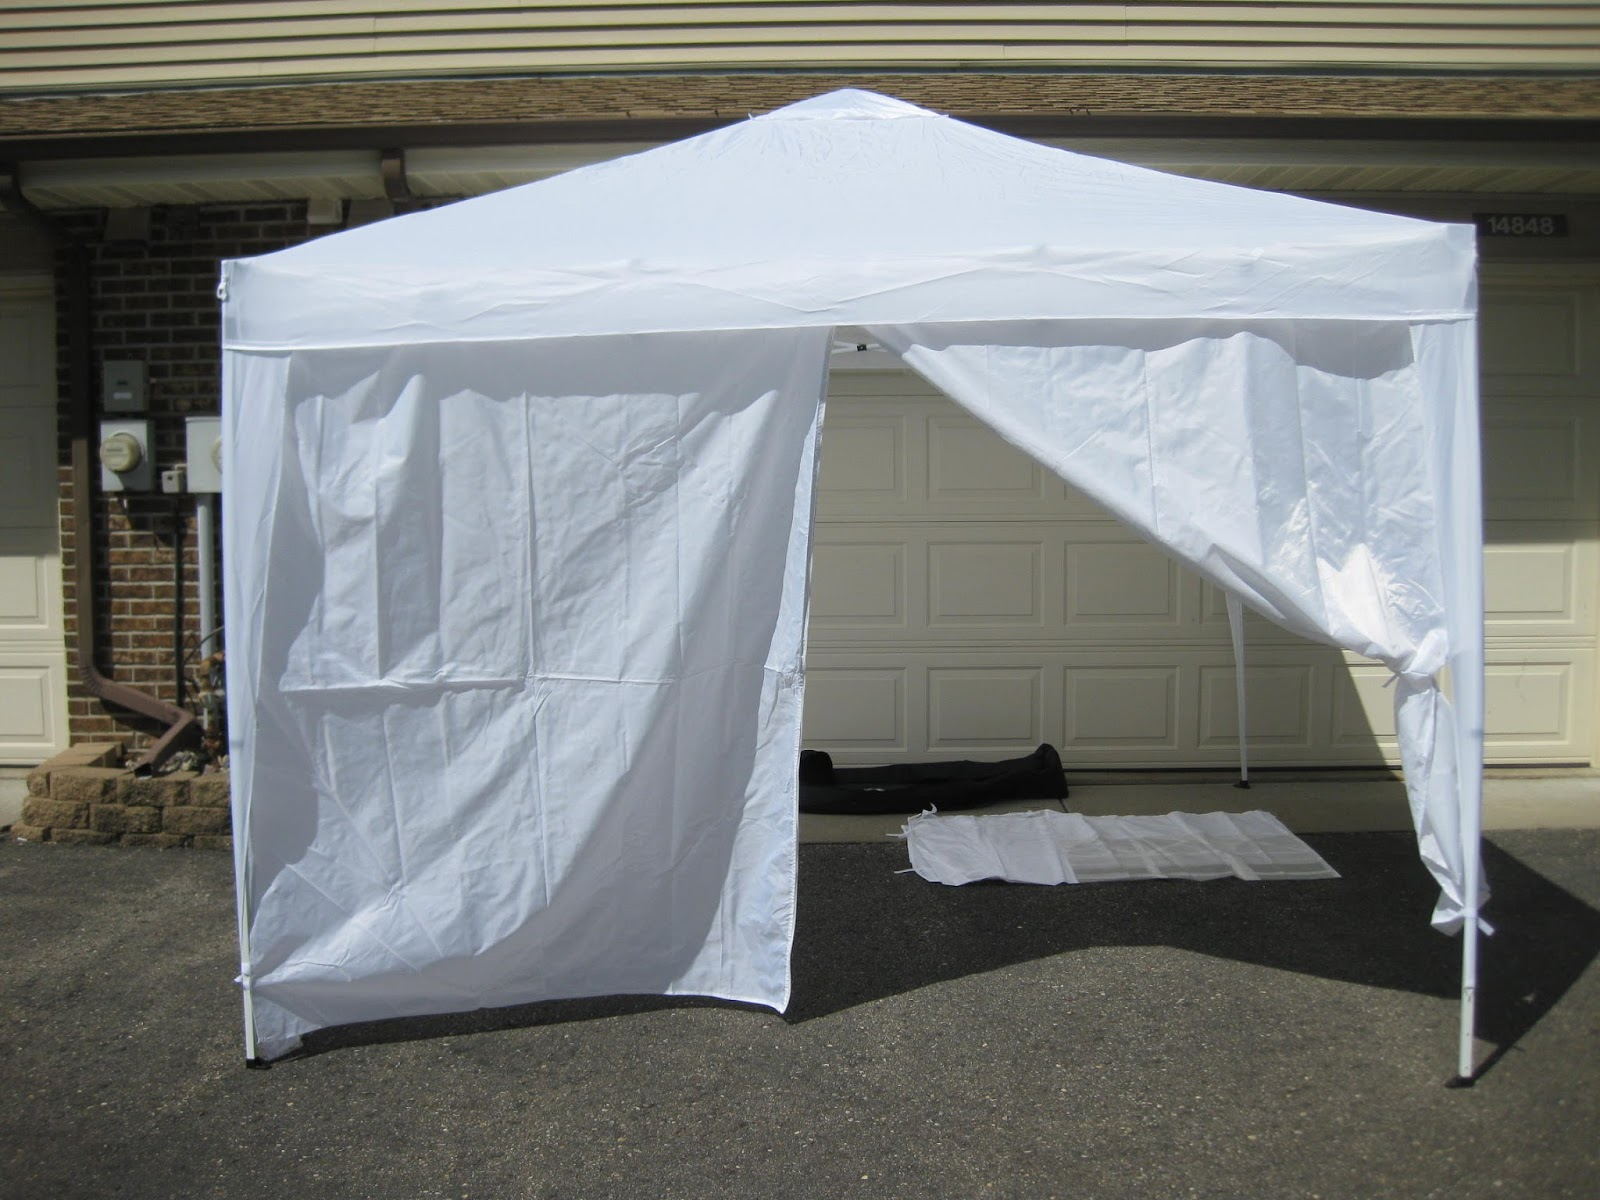 Altogether the canopy tent has worked as designed and expected. Other than how easy it was for the tent to scratch we have no other complaints about the ... & Let Me Review That For You!: White EZ Pop Up Canopy Tent 10 x 10 ...